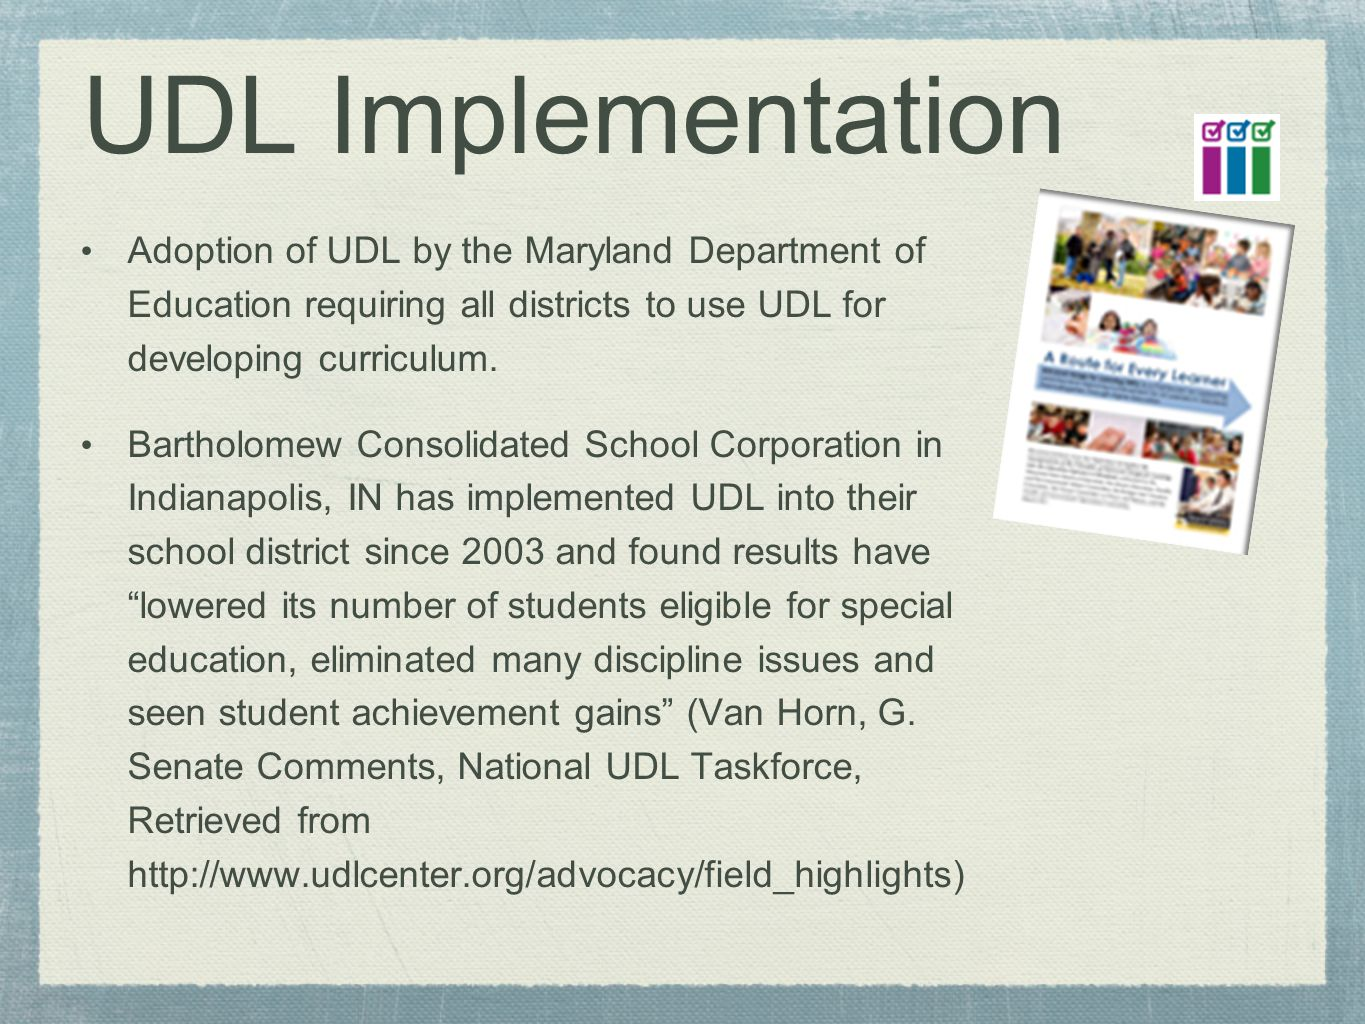 UDL Implementation Adoption of UDL by the Maryland Department of Education requiring all districts to use UDL for developing curriculum.